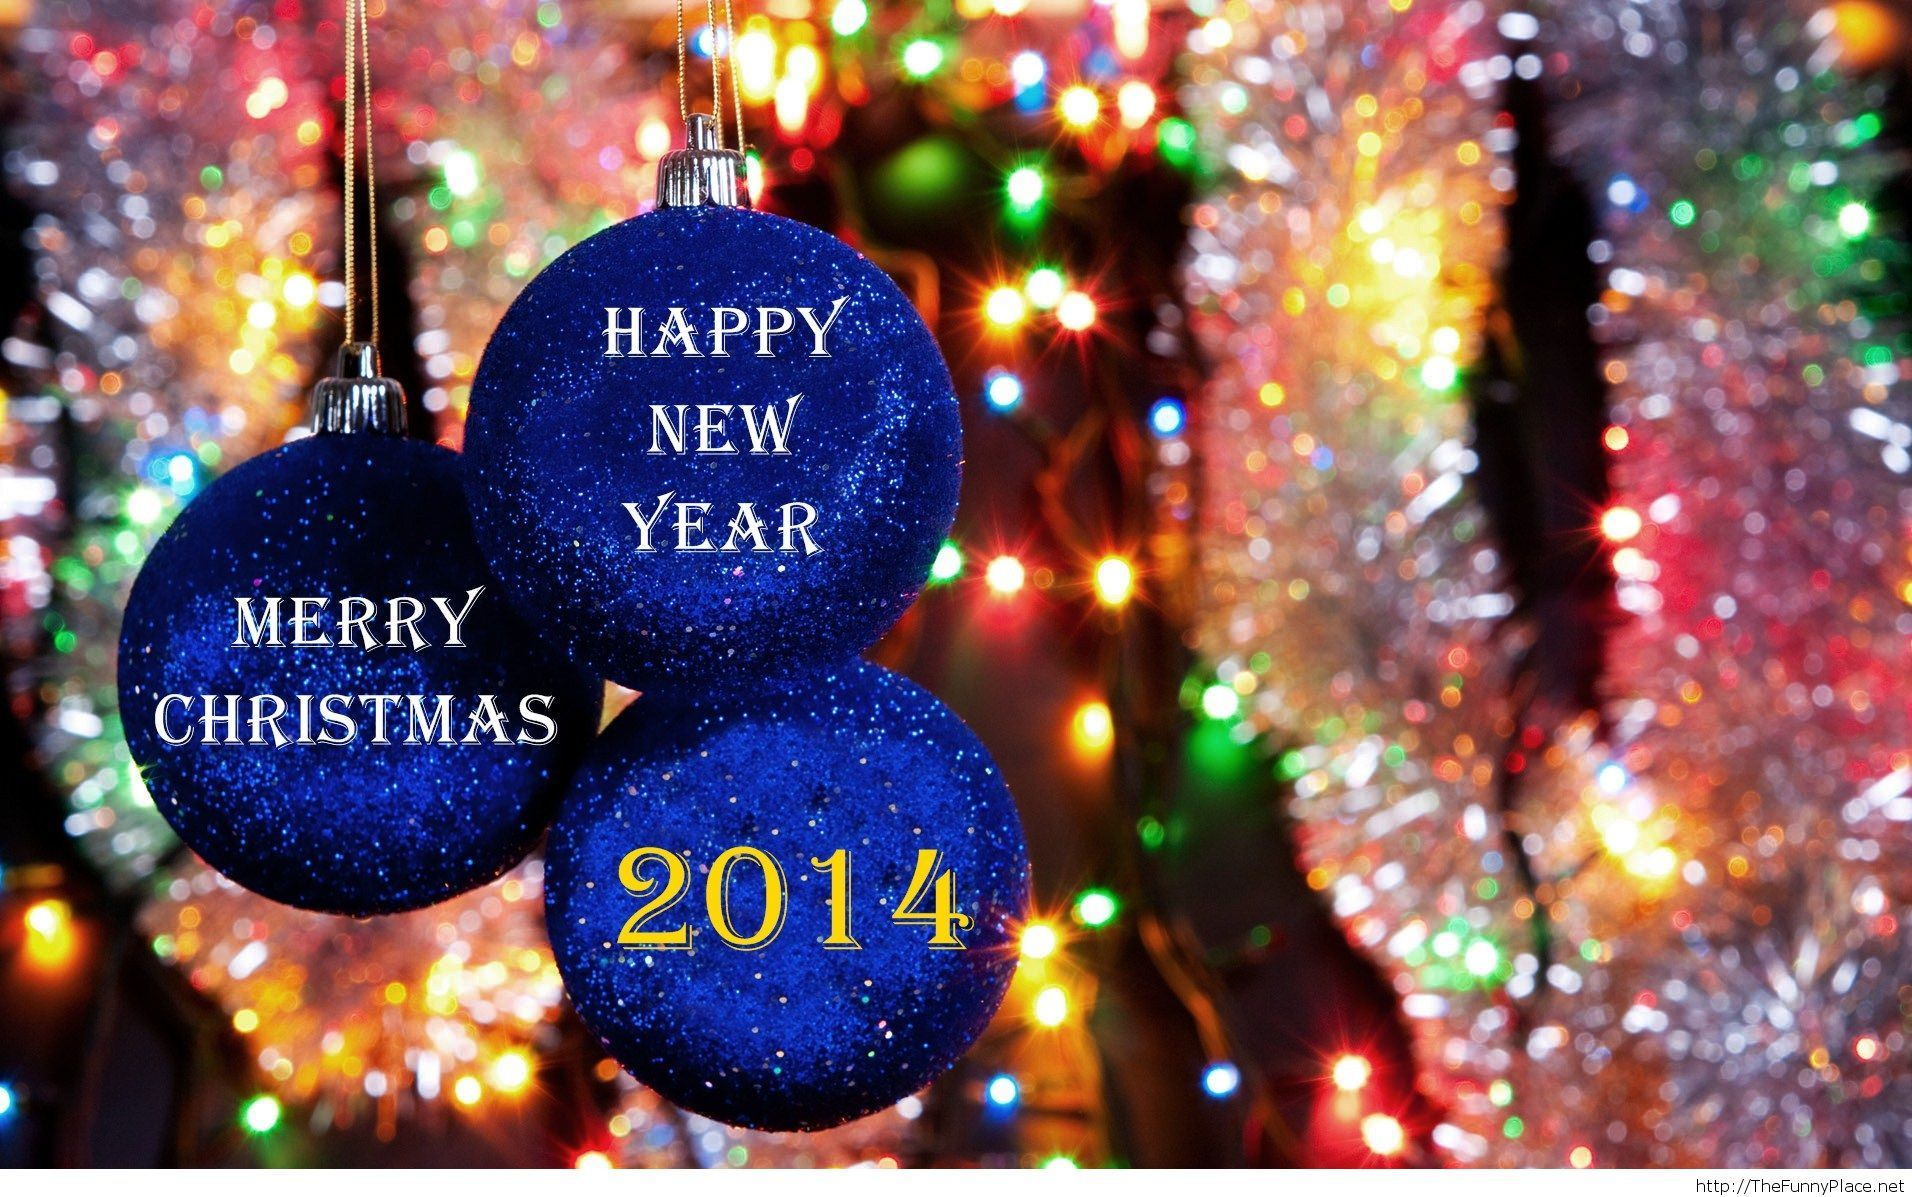 merry christmas and happy new year 2014 hd wallpaper – thefunnyplace